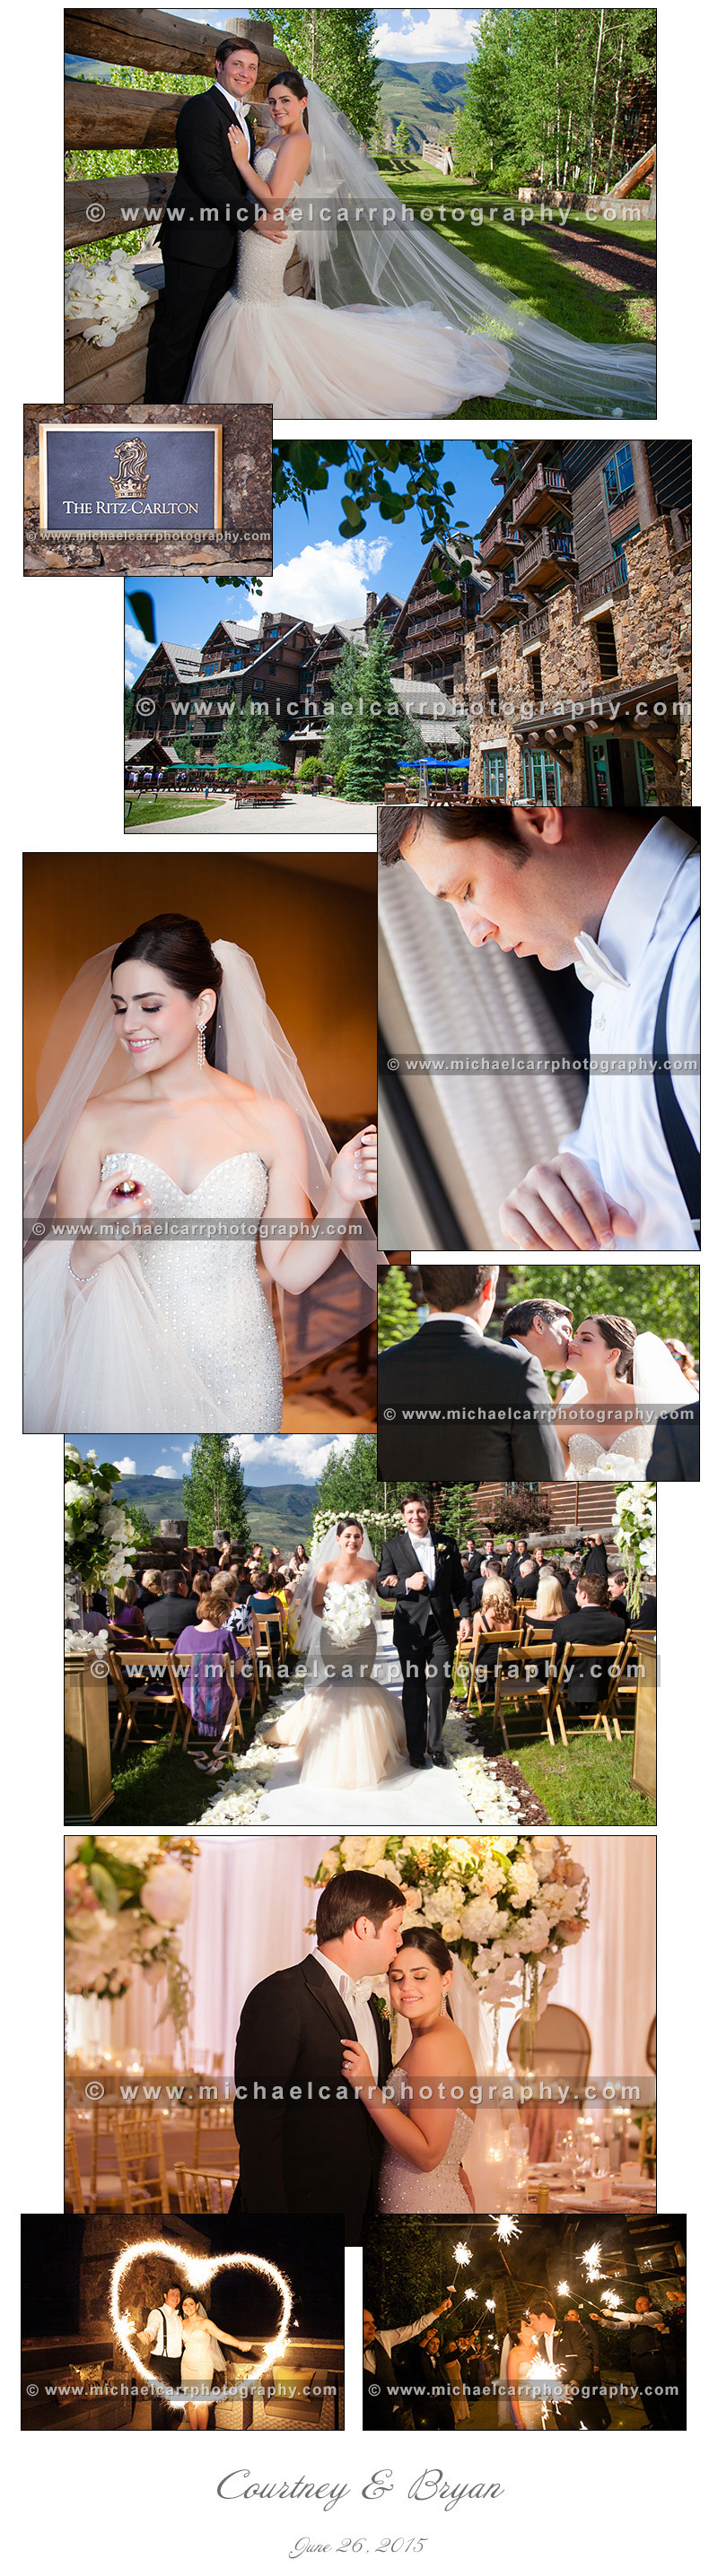 Vail, Colorado Weddings